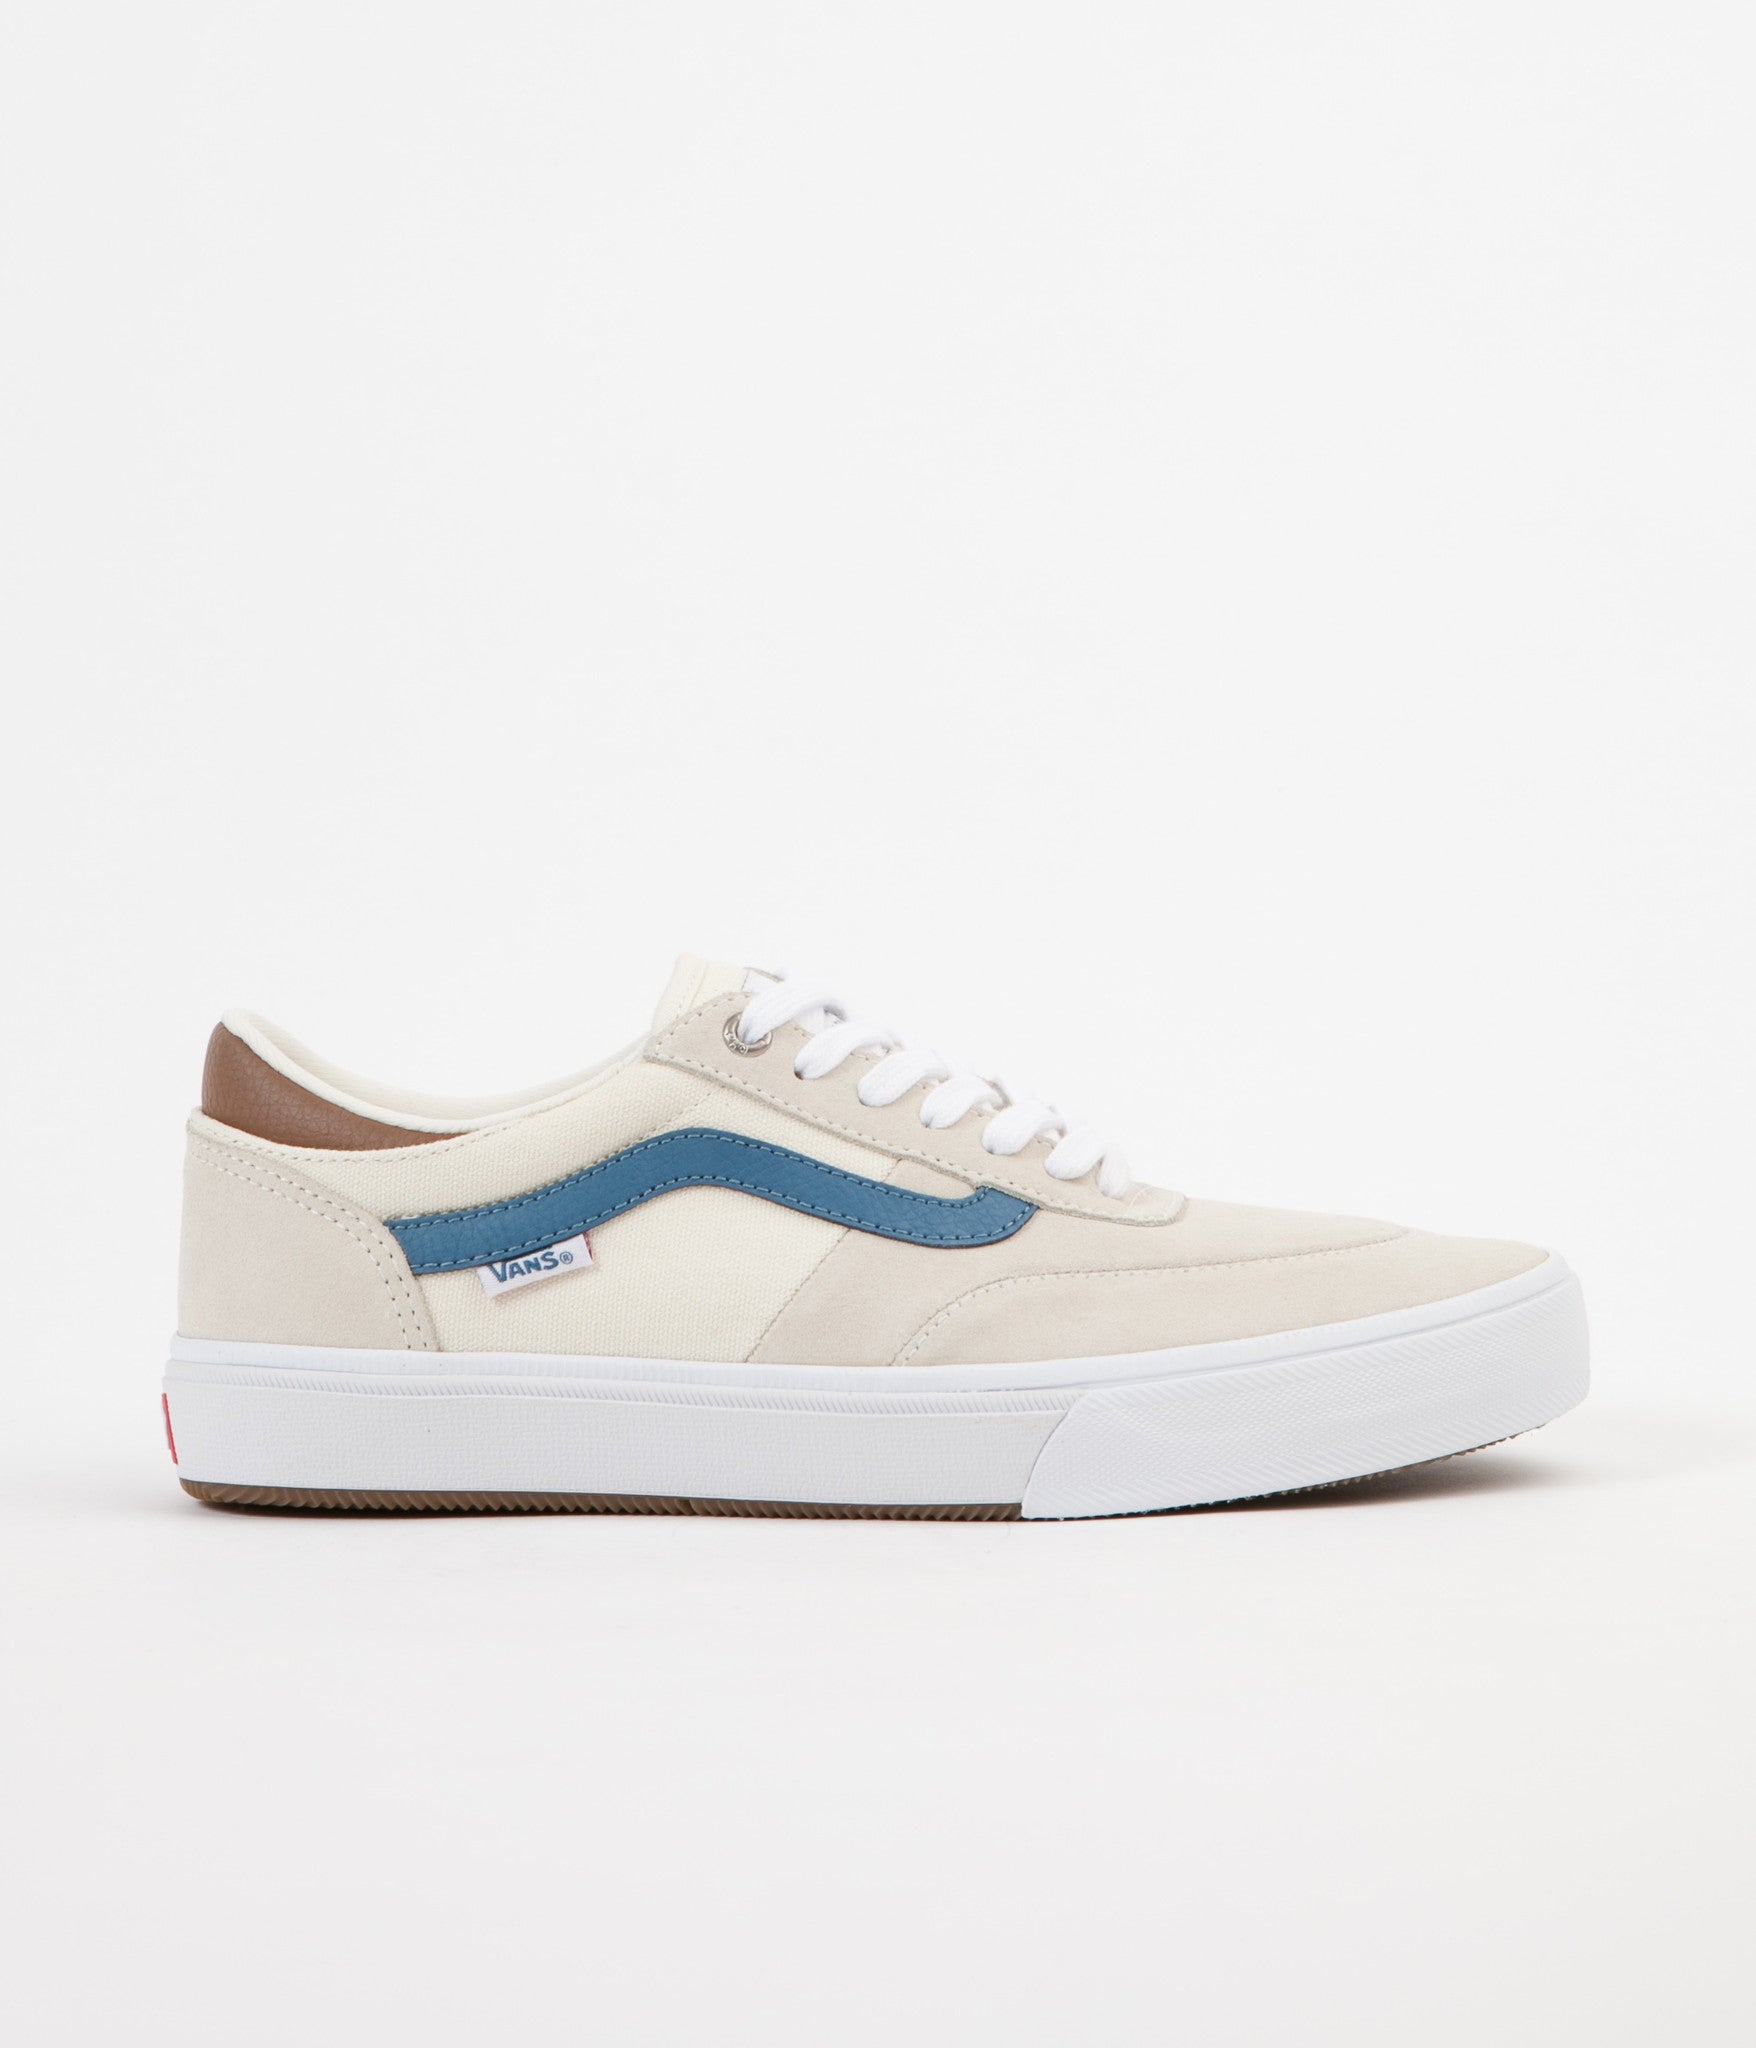 Vans Gilbert Crockett 2 Pro Shoes - Antique White